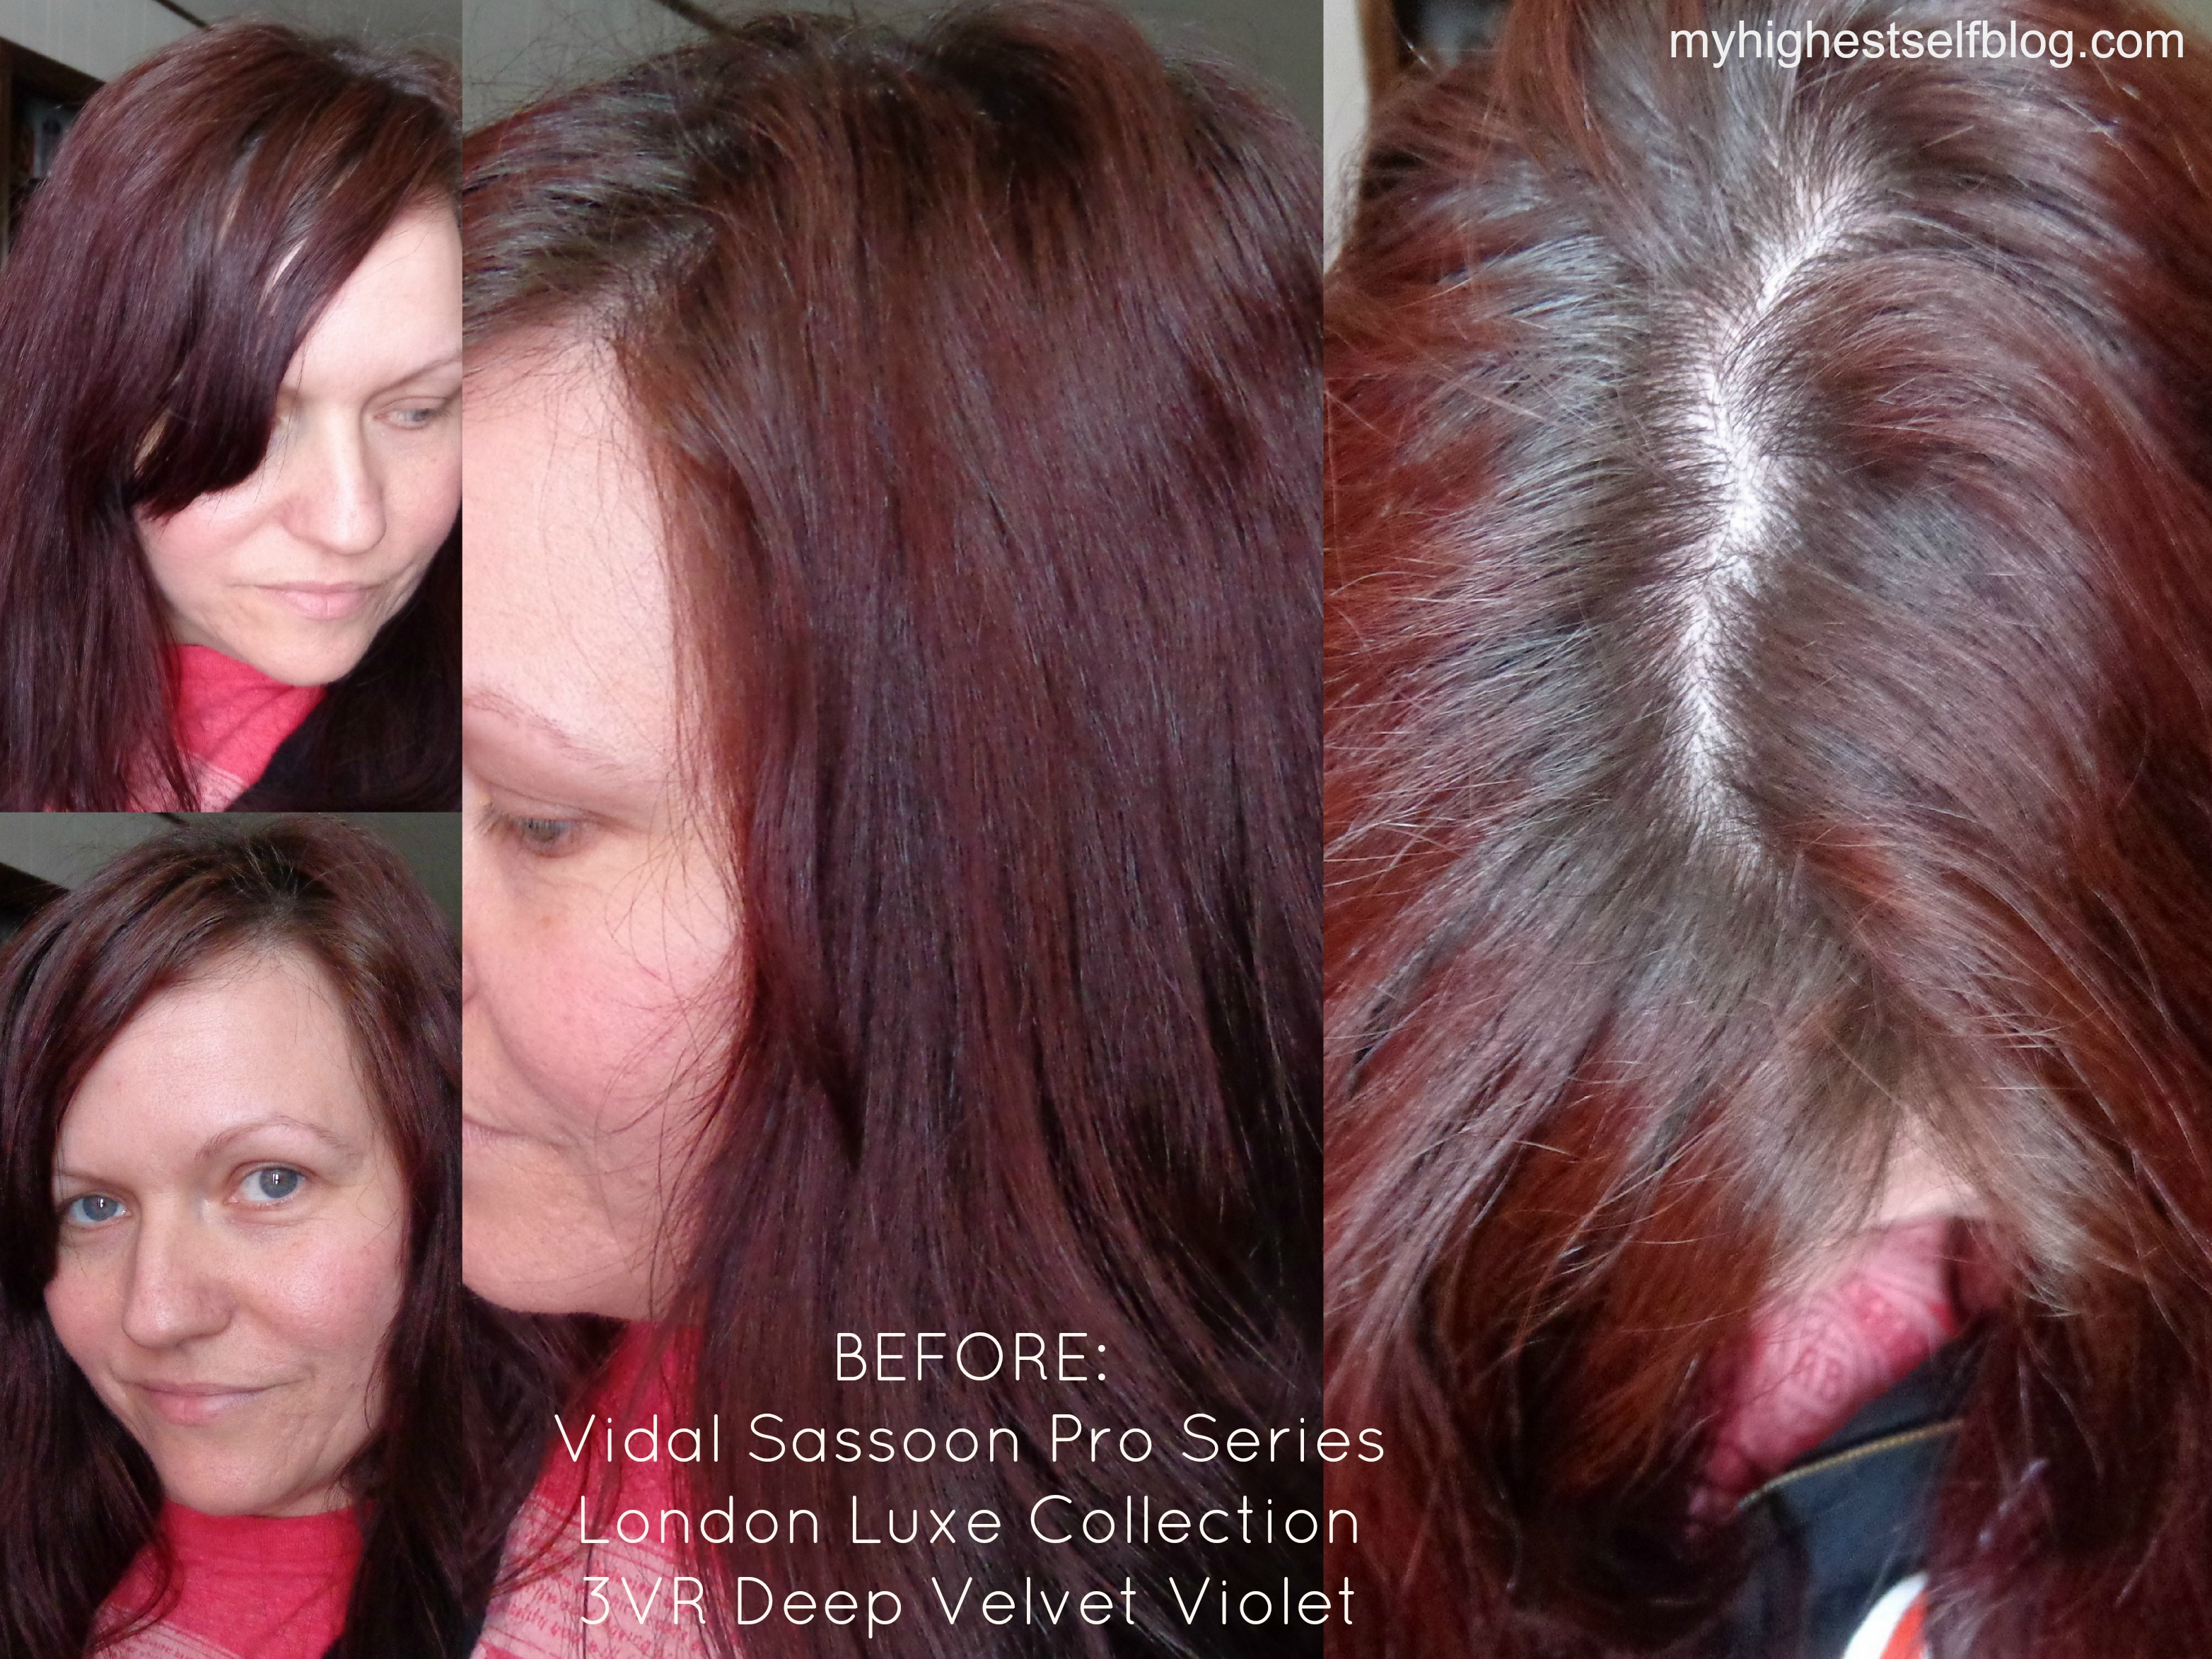 Review With Before And After Photos Vidal Sassoon Pro Series Hair